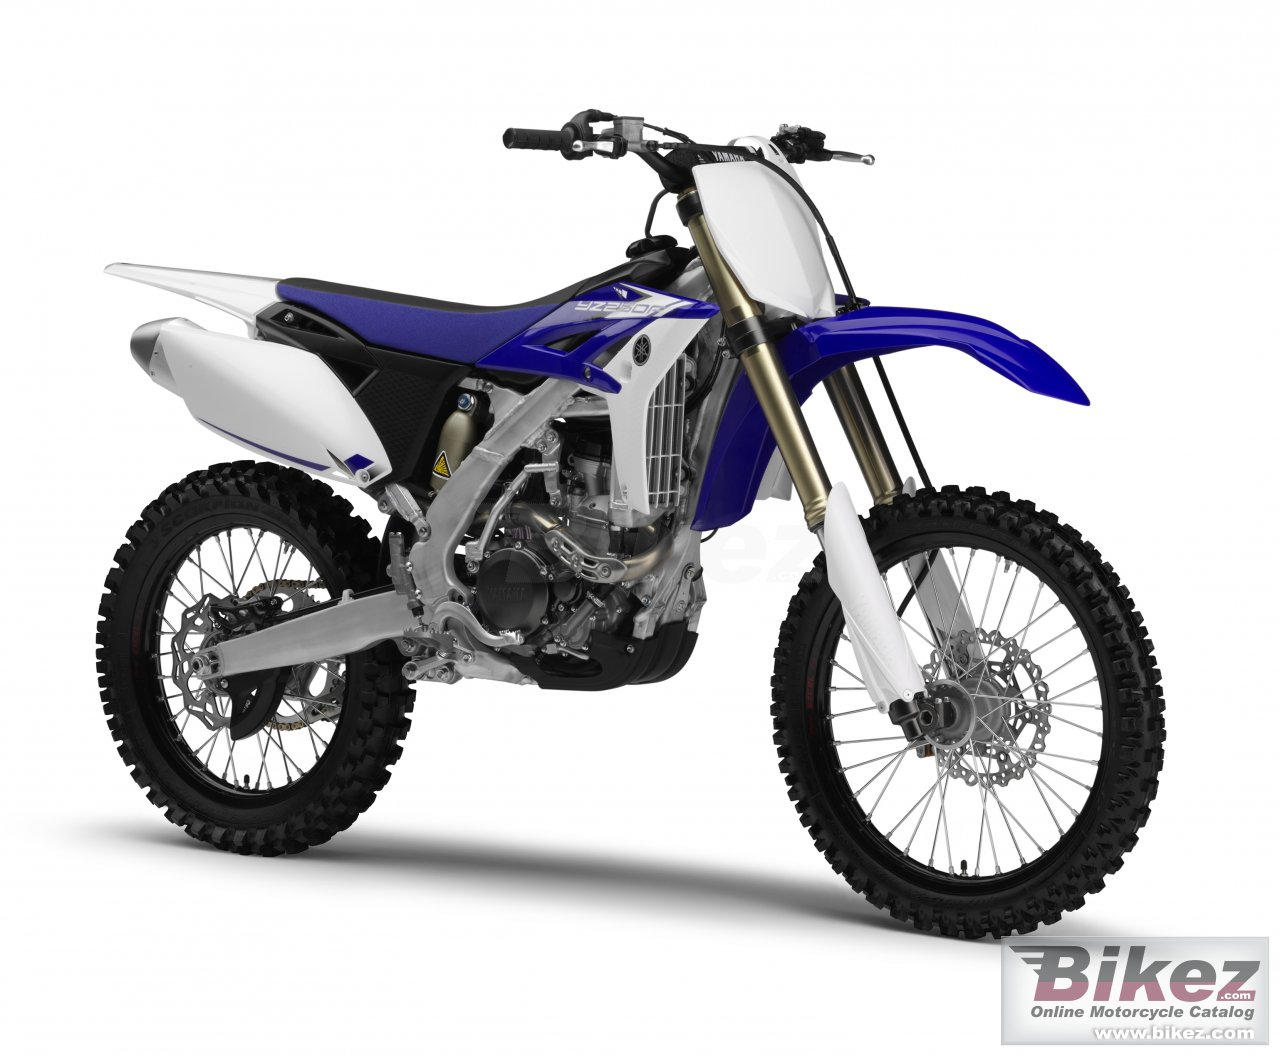 Big Yamaha yz250f picture and wallpaper from Bikez.com